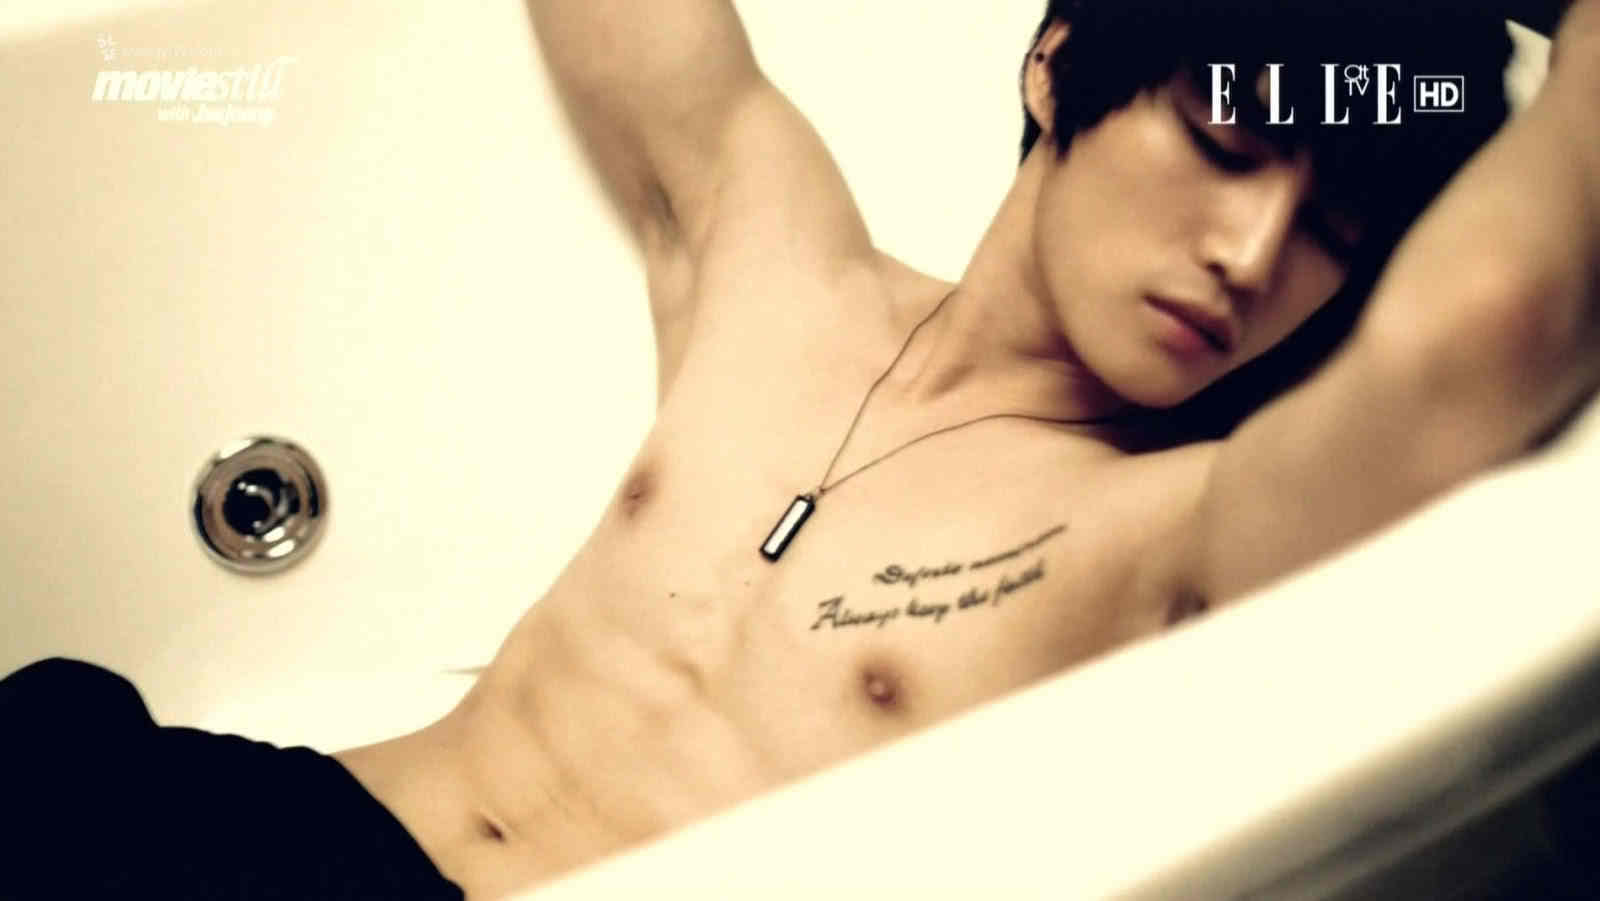 JJ-Elle-photoshoot-hero-jae-joong-205979